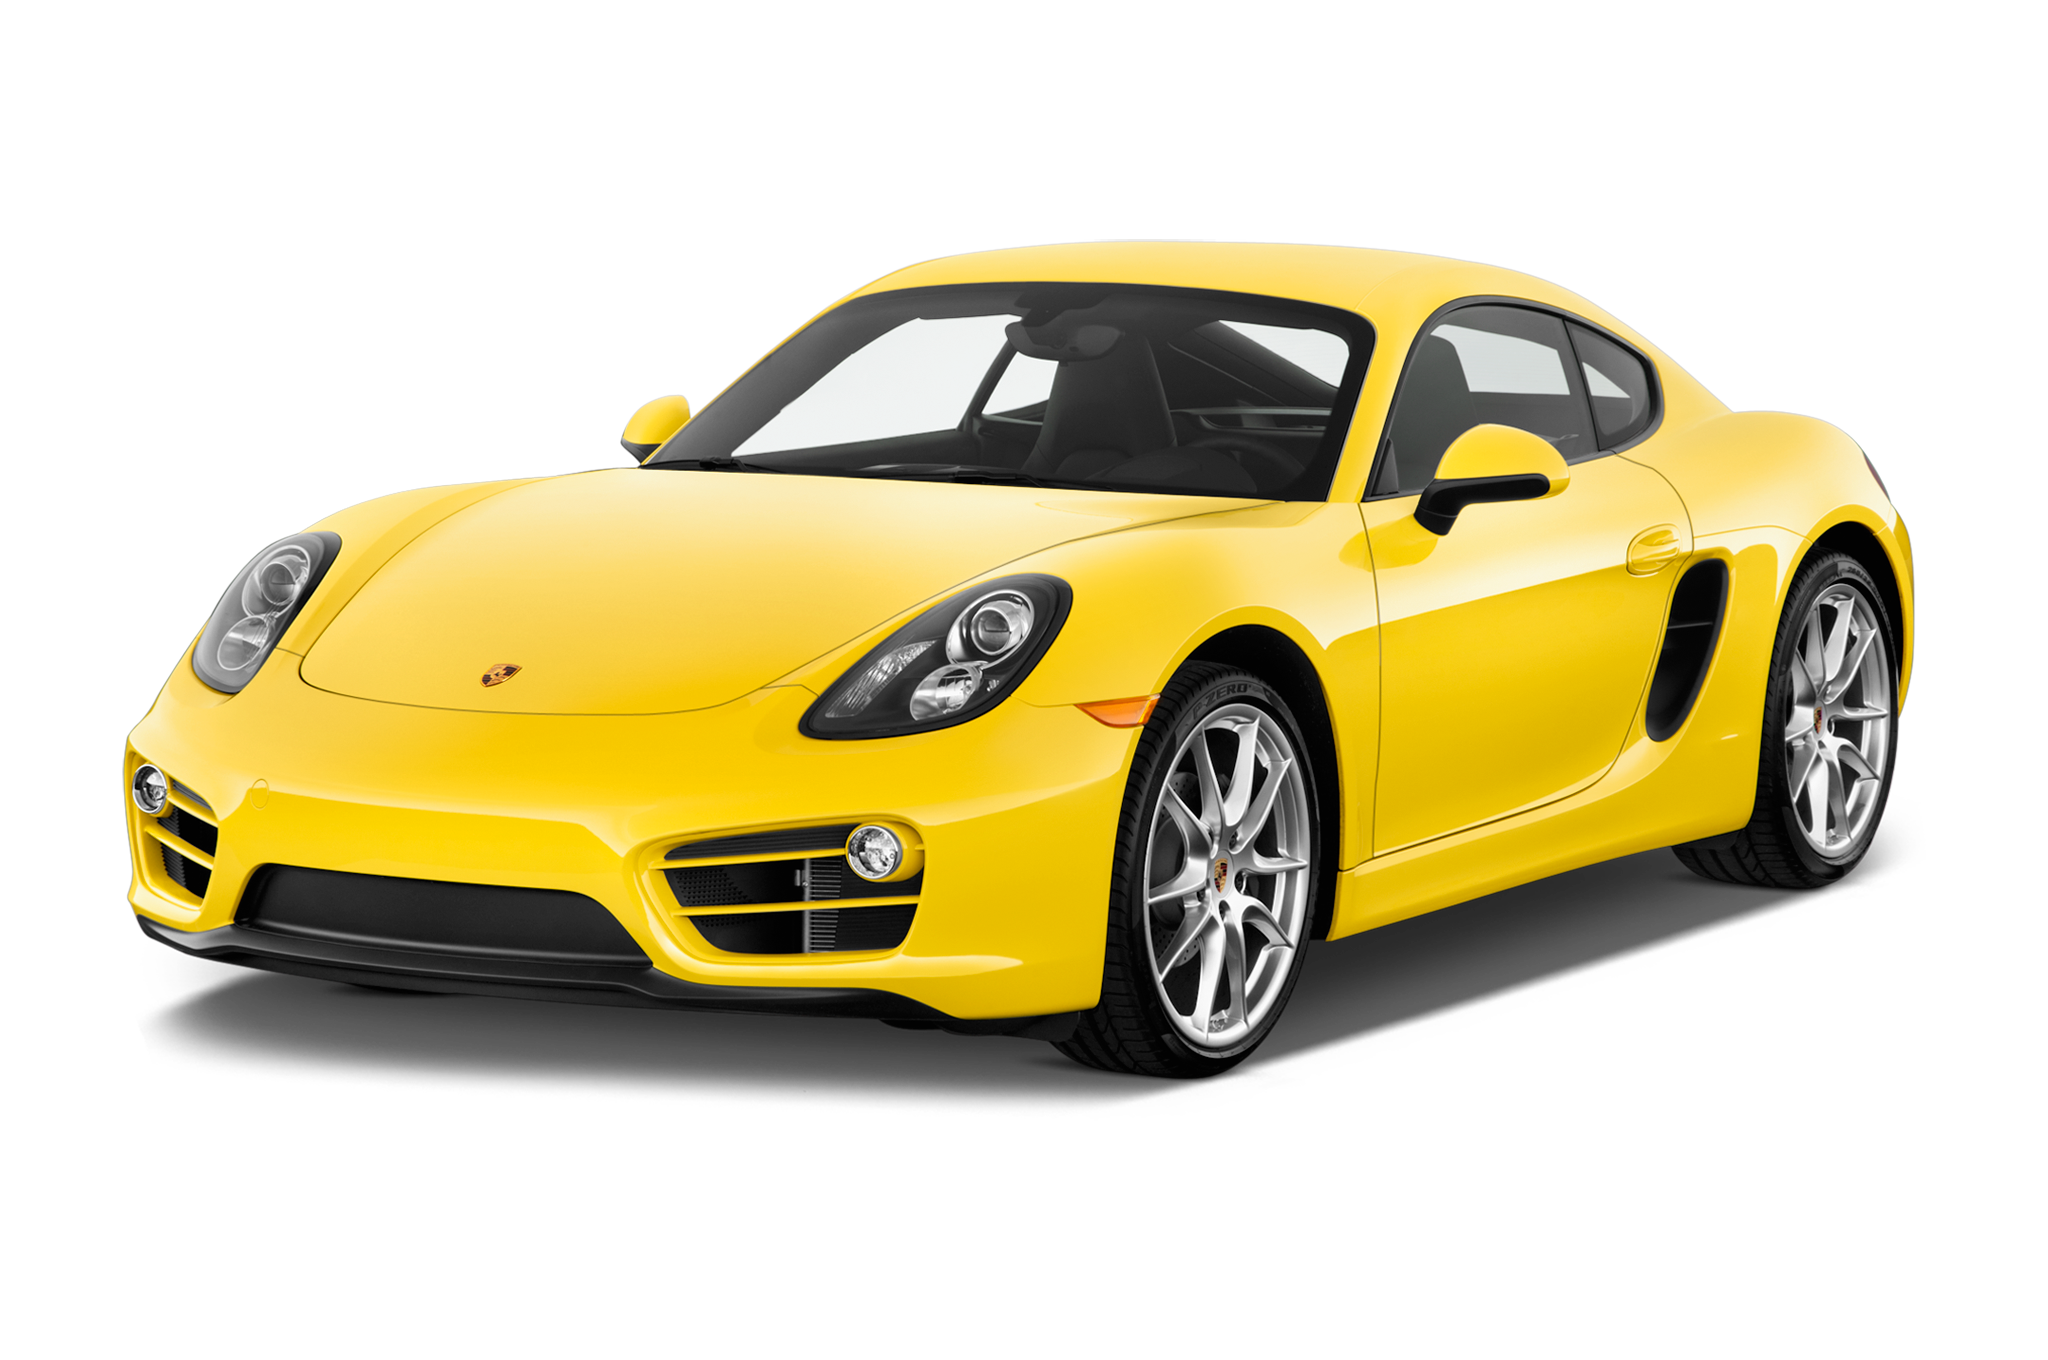 Porsche vector gt4. Png image purepng free